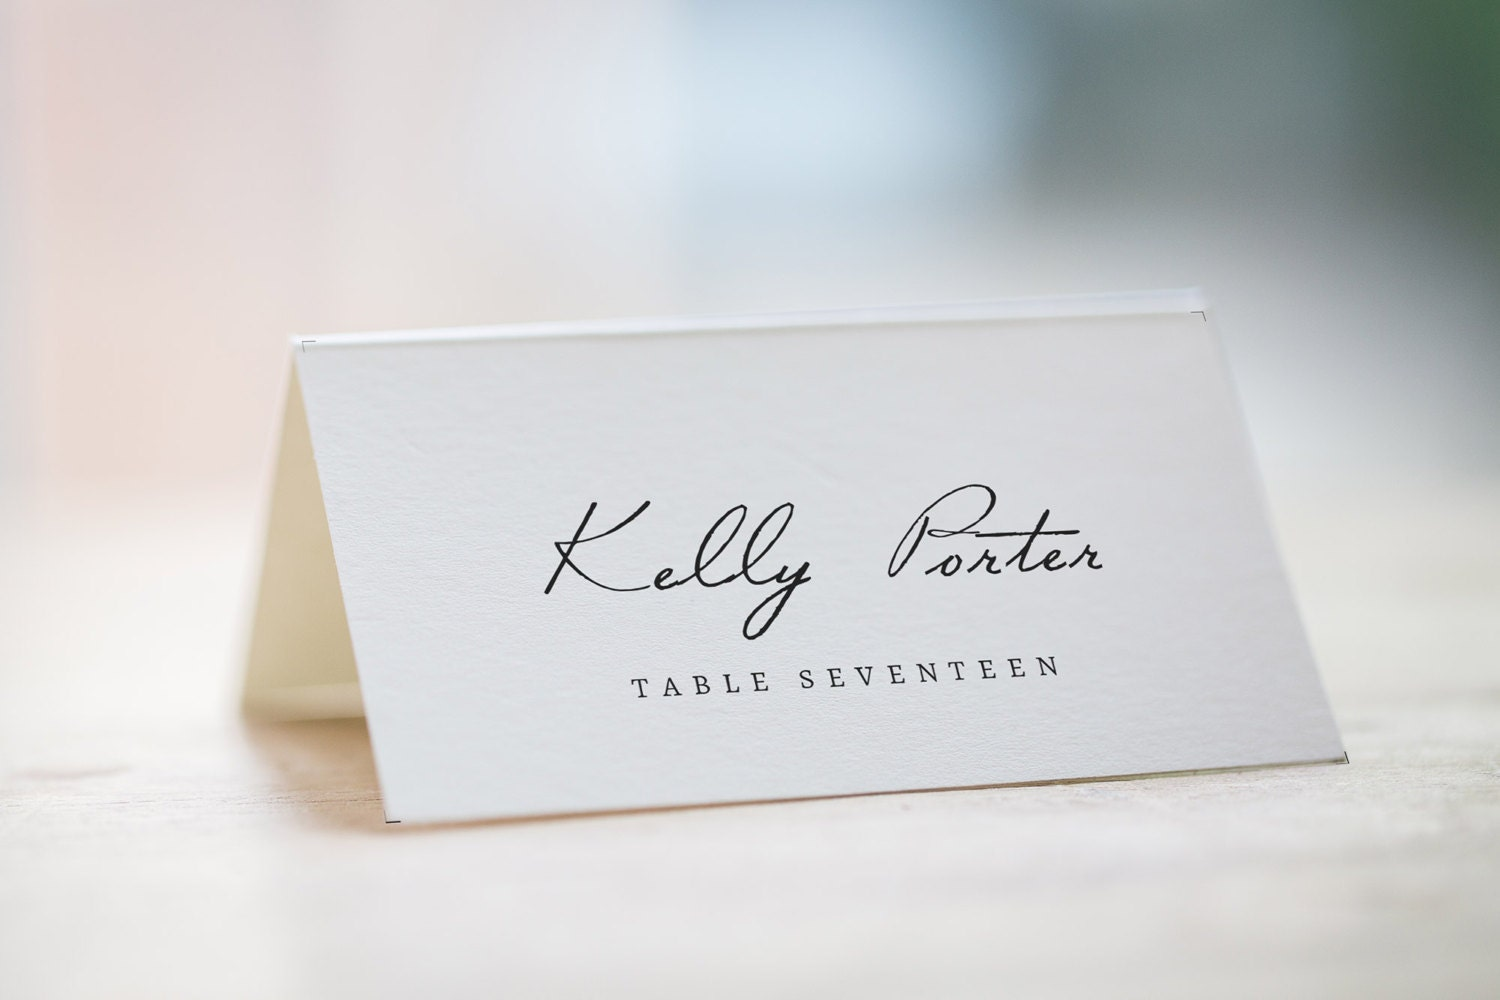 Exceptional image for free printable wedding place cards